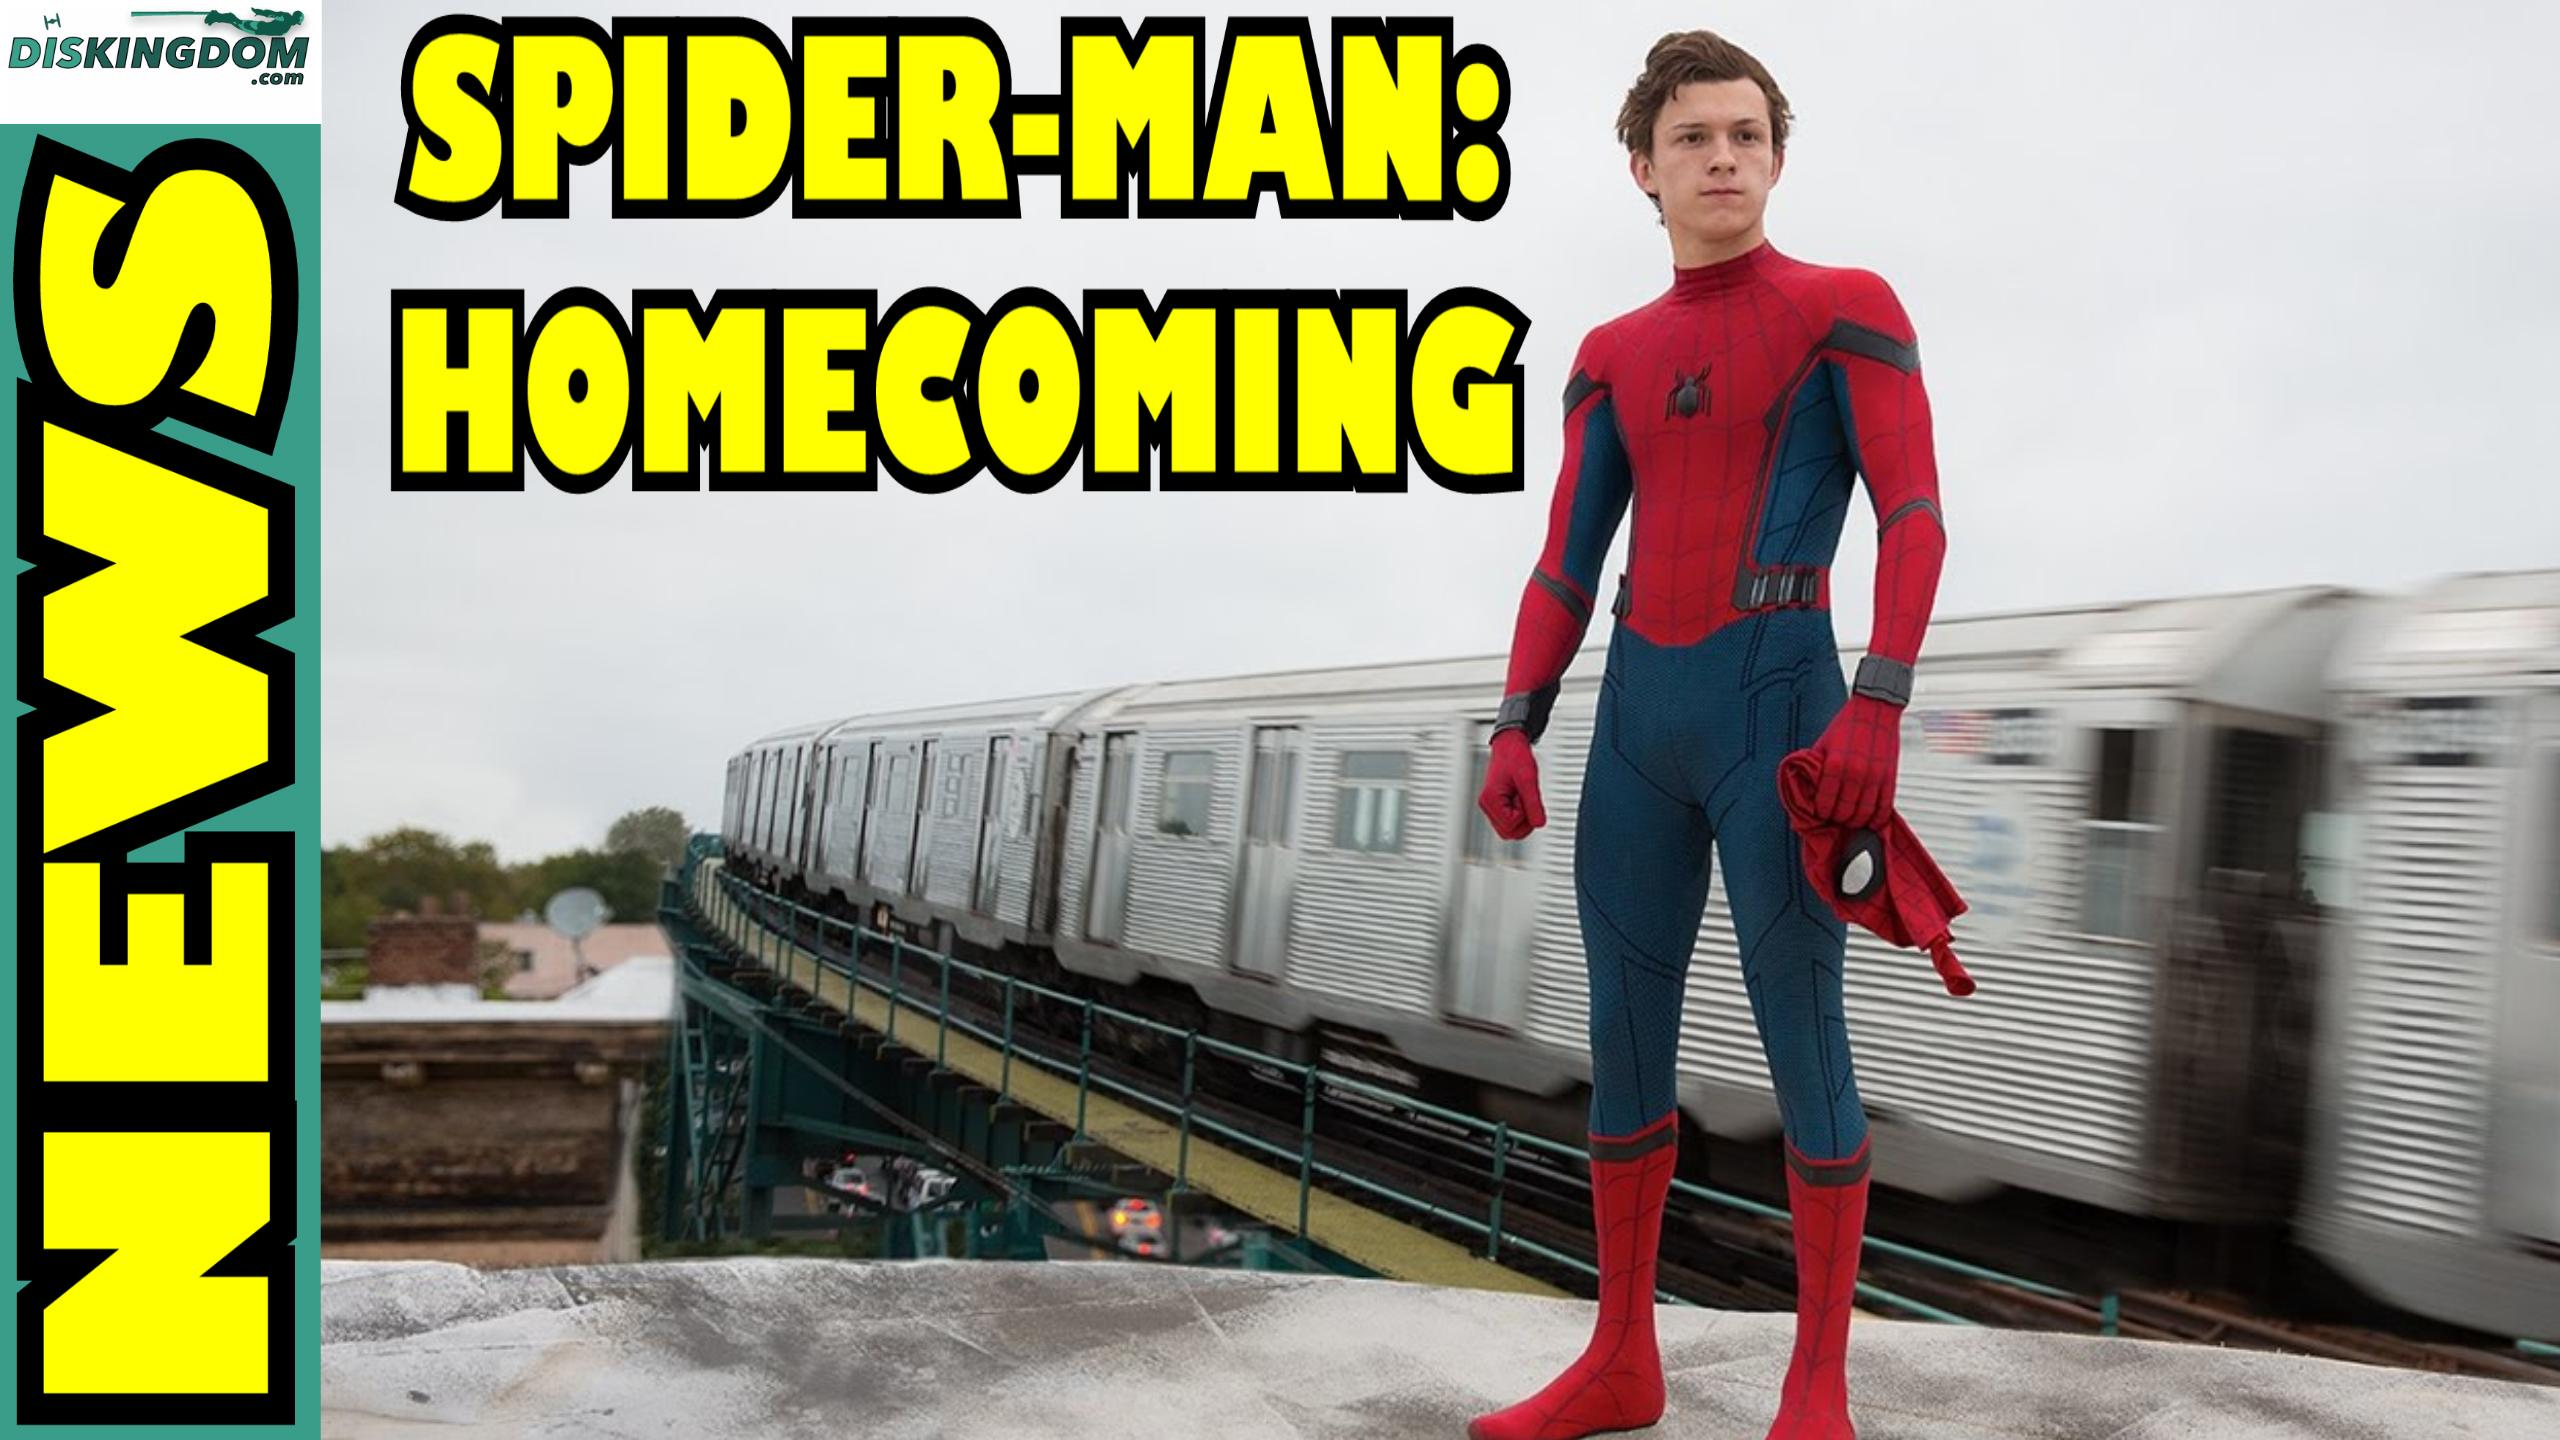 Spider-Man: Homecoming Trailer Reaction + Pigs In Space Return | DK Disney News